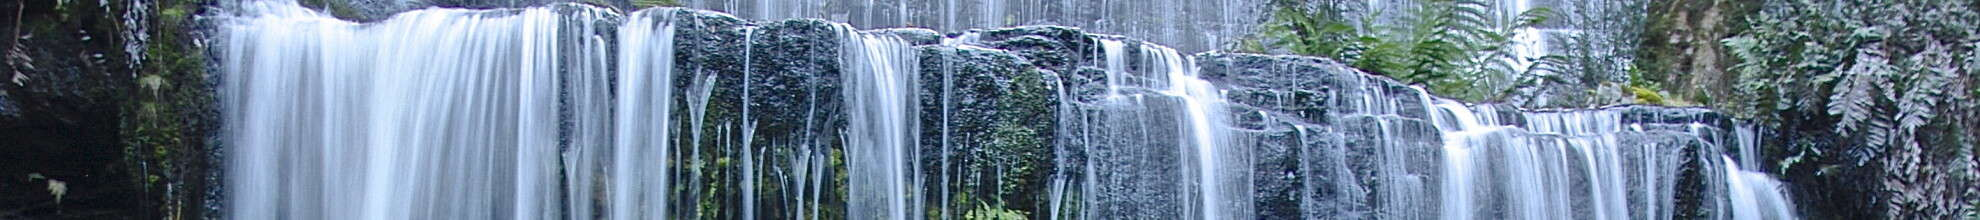 gently cascading waterfall